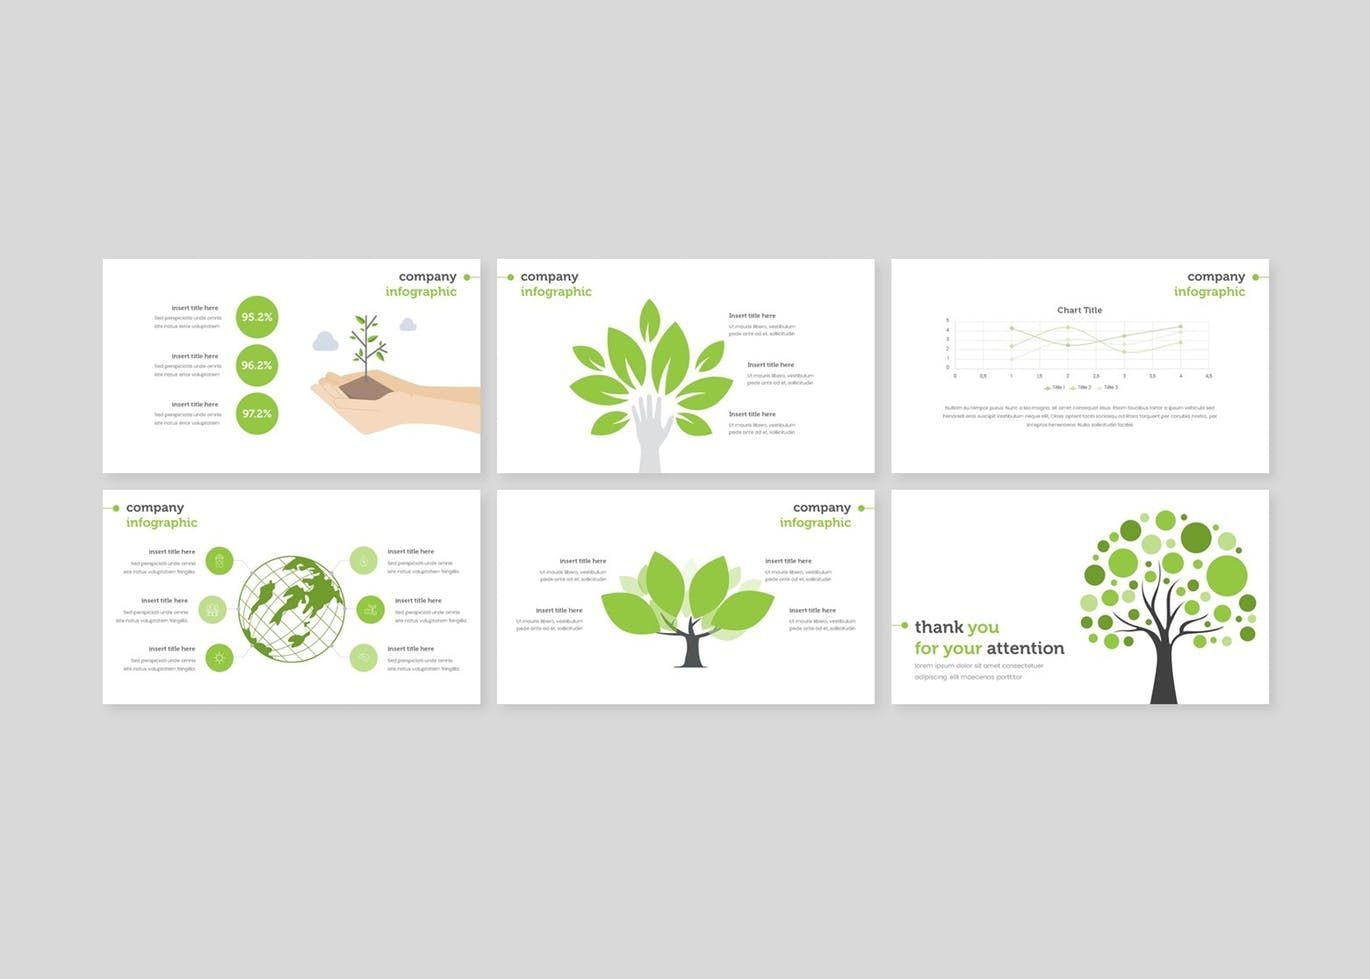 Inspring - Google Slides Template, Slide 5, 07738, Presentation Templates — PoweredTemplate.com